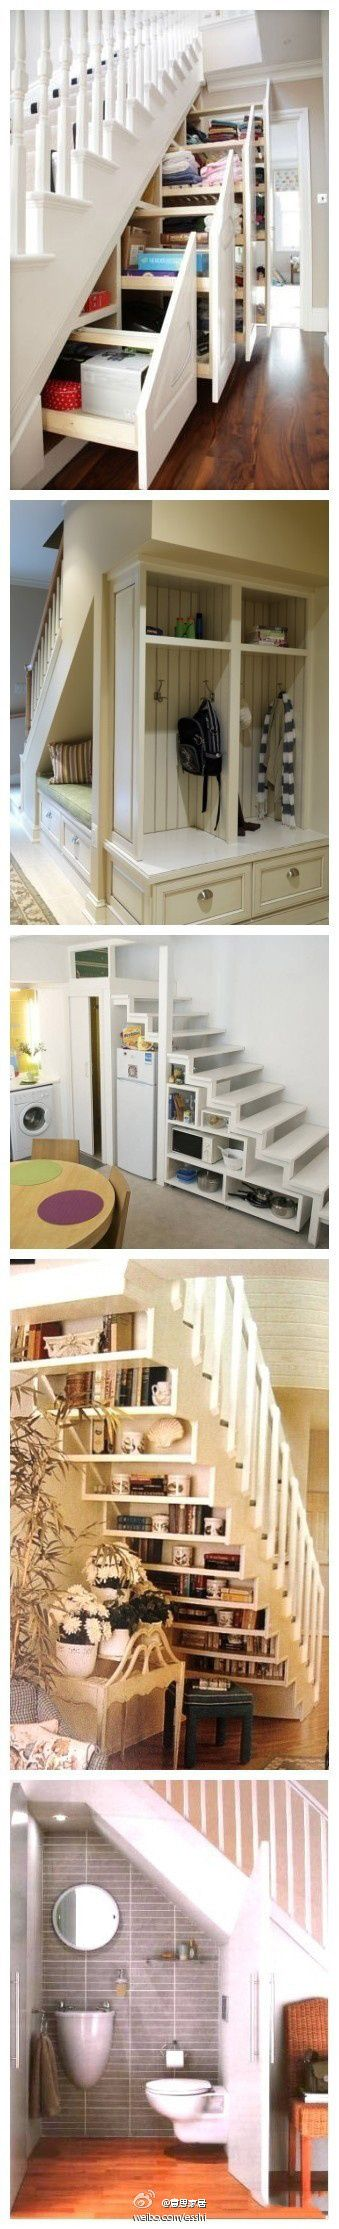 genius ideas to utilize space under staircase!